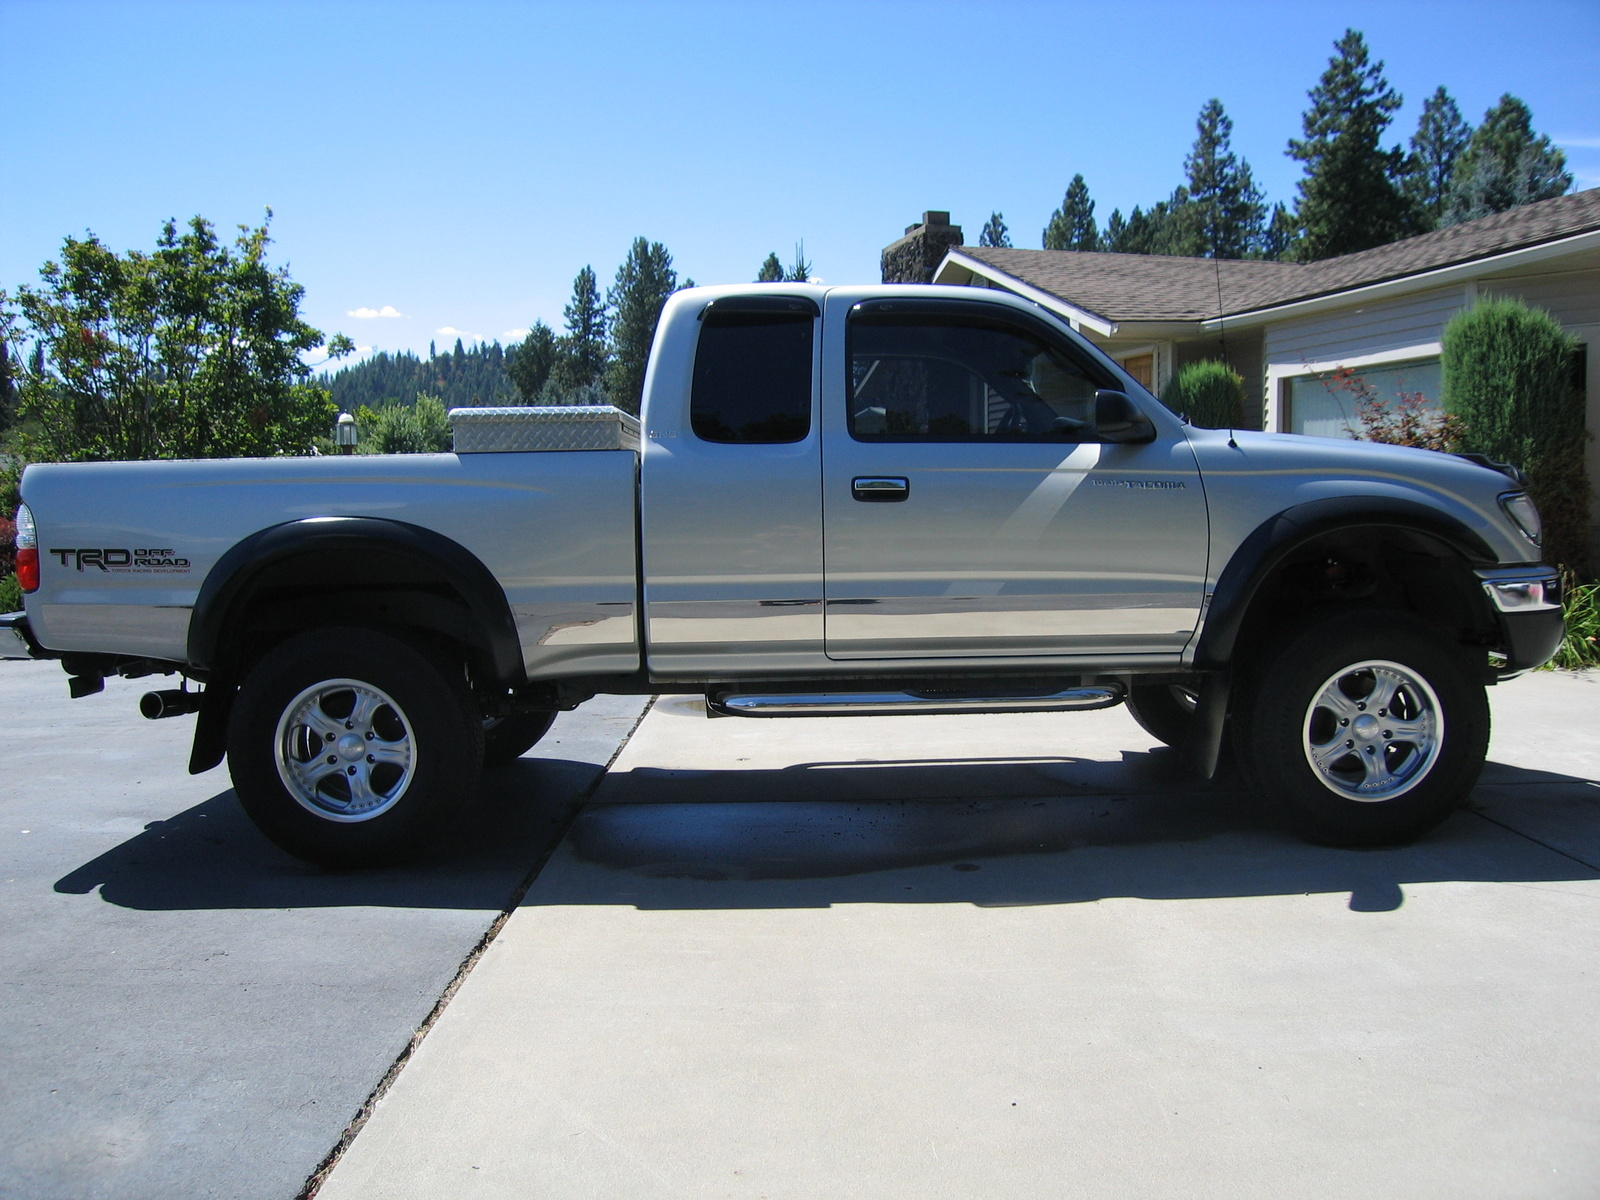 2007 Ford Ranger Prerunner Long Travel Extra Cab